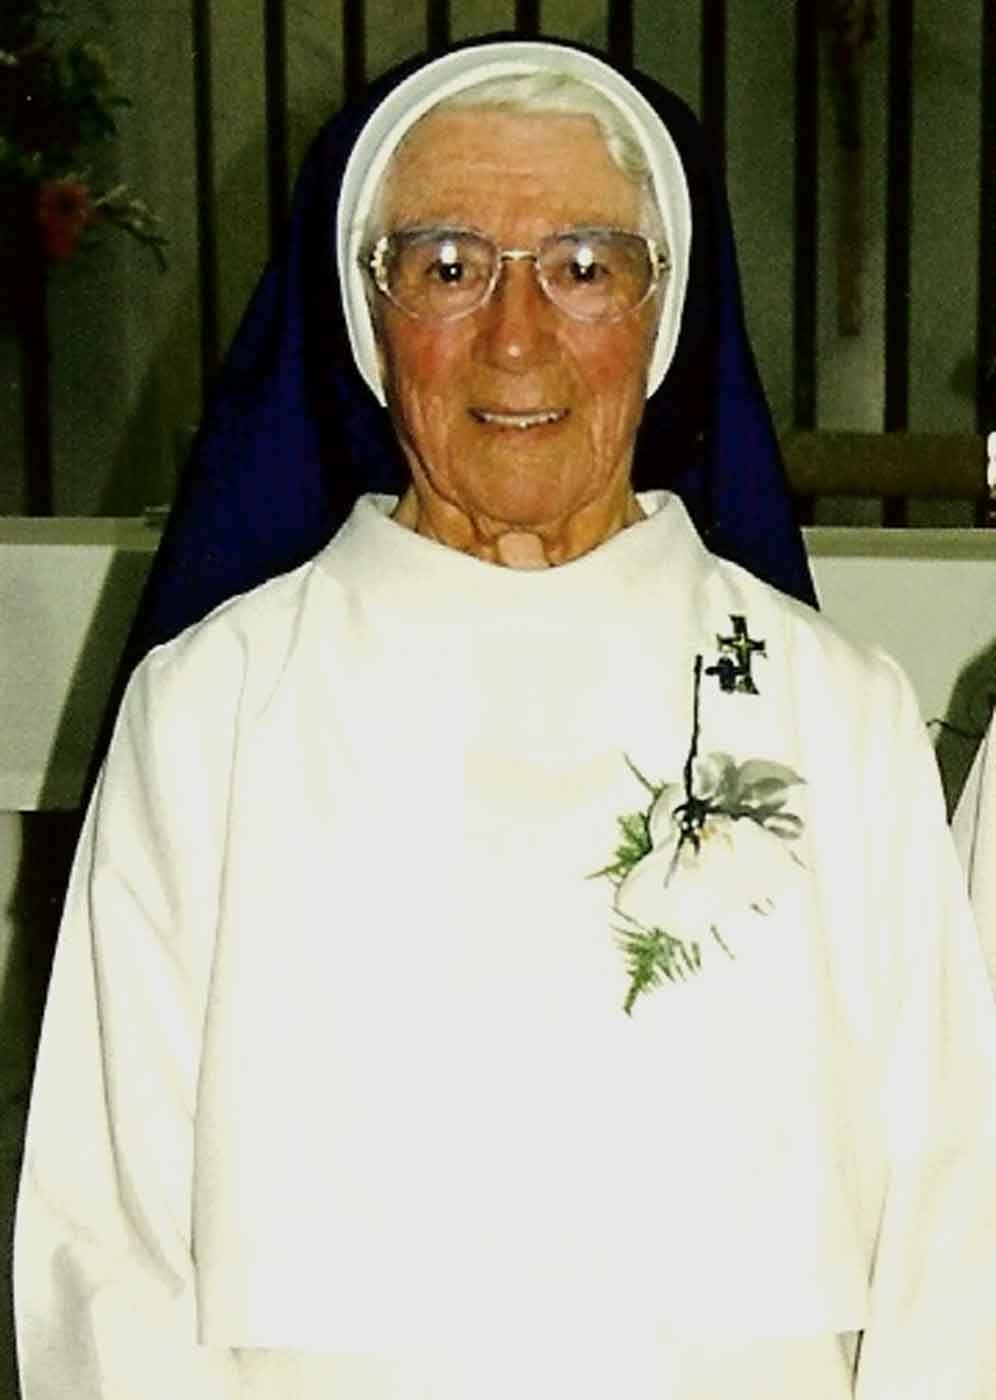 Photo portrait of a nun wearing habit. - click to view larger image